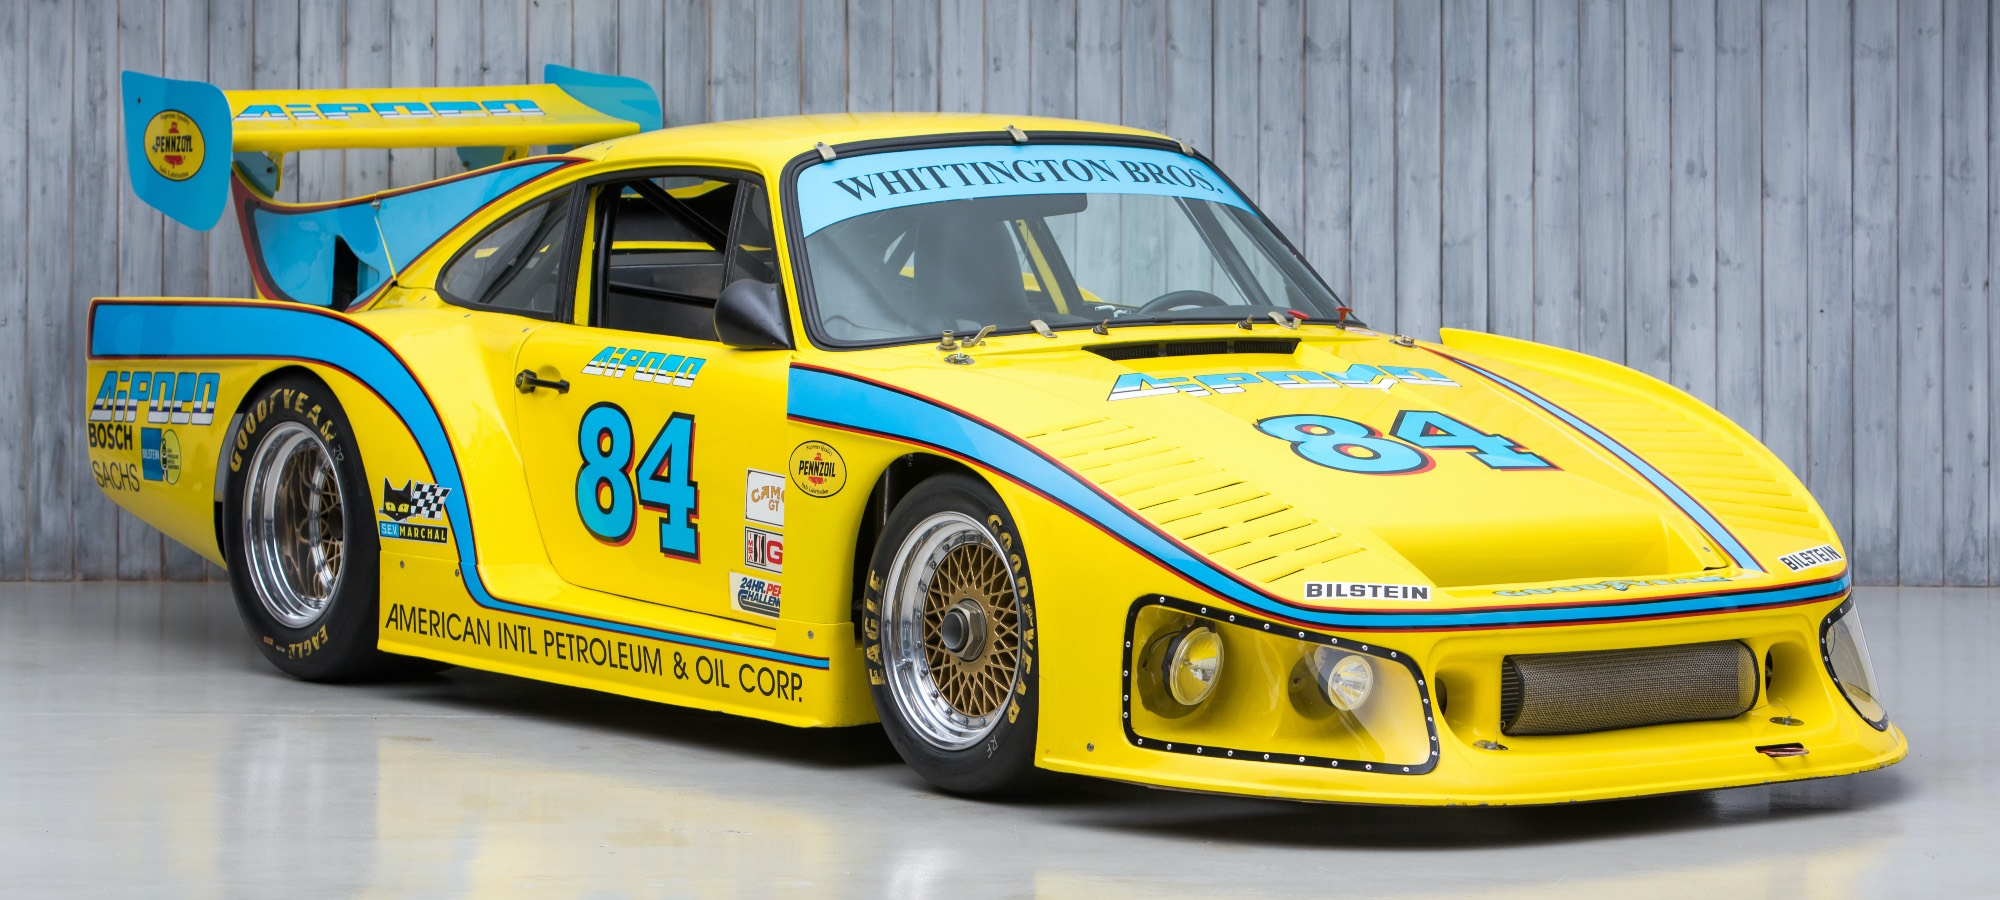 The Multiple Le Mans 24 Hours, Daytona 24 Hours and Sebring 12 Hours 1976 Porsche 934 Turbo RSR to 934 M16/K3